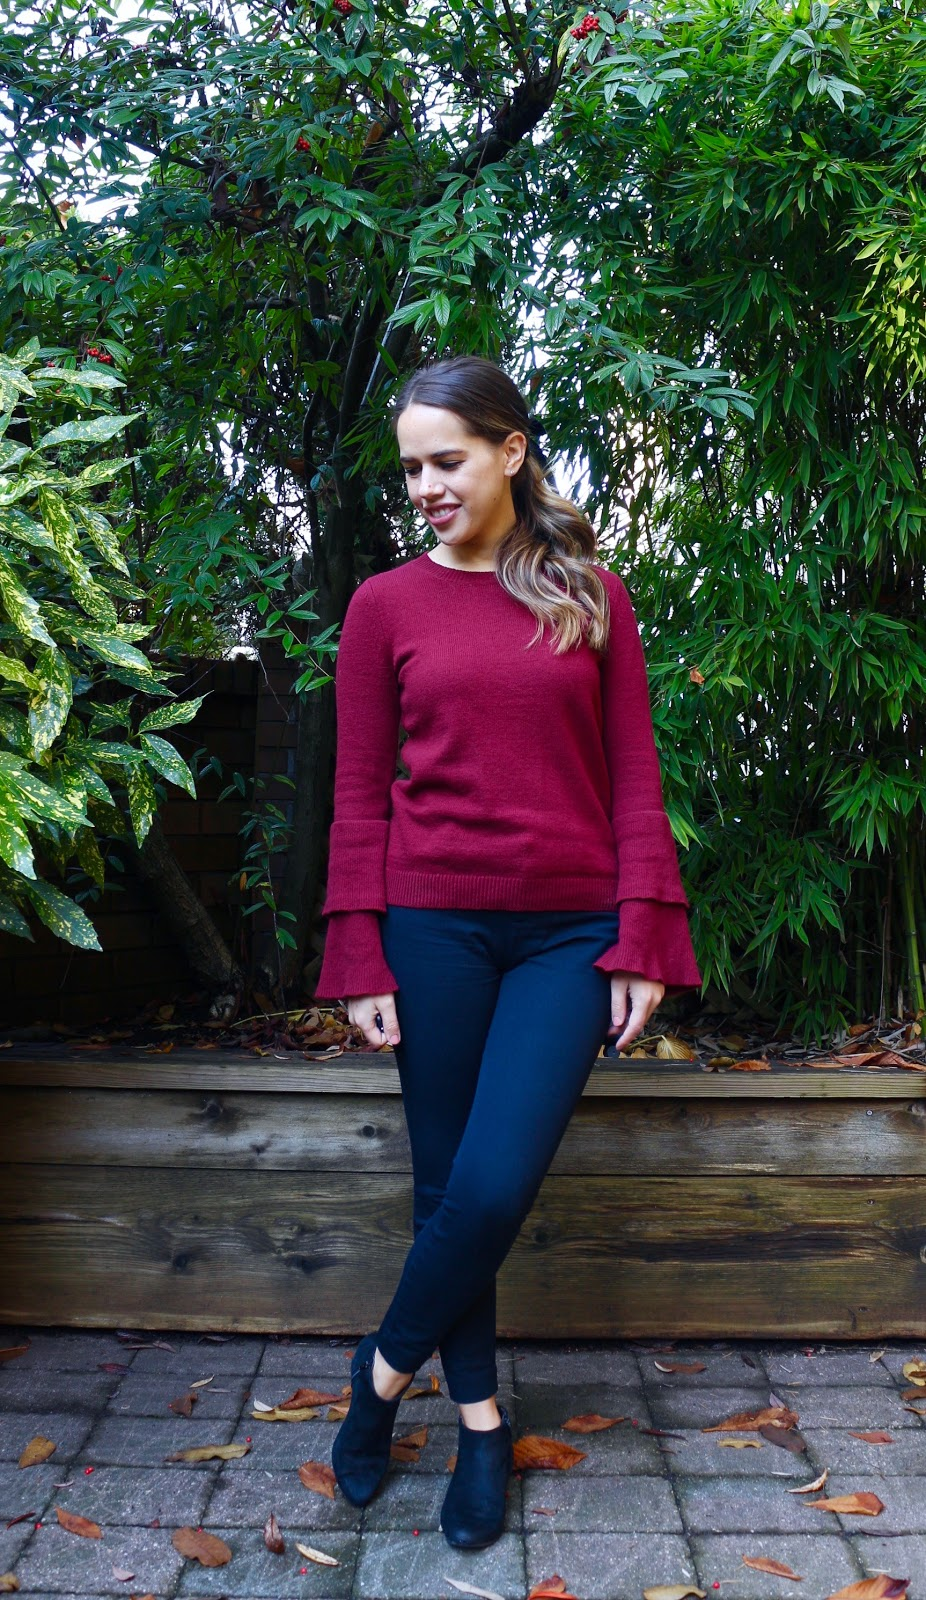 Jules in Flats - Ruffle Sleeve Sweater + Velvet Hair Bow (Business Casual Fall Workwear on a Budget)